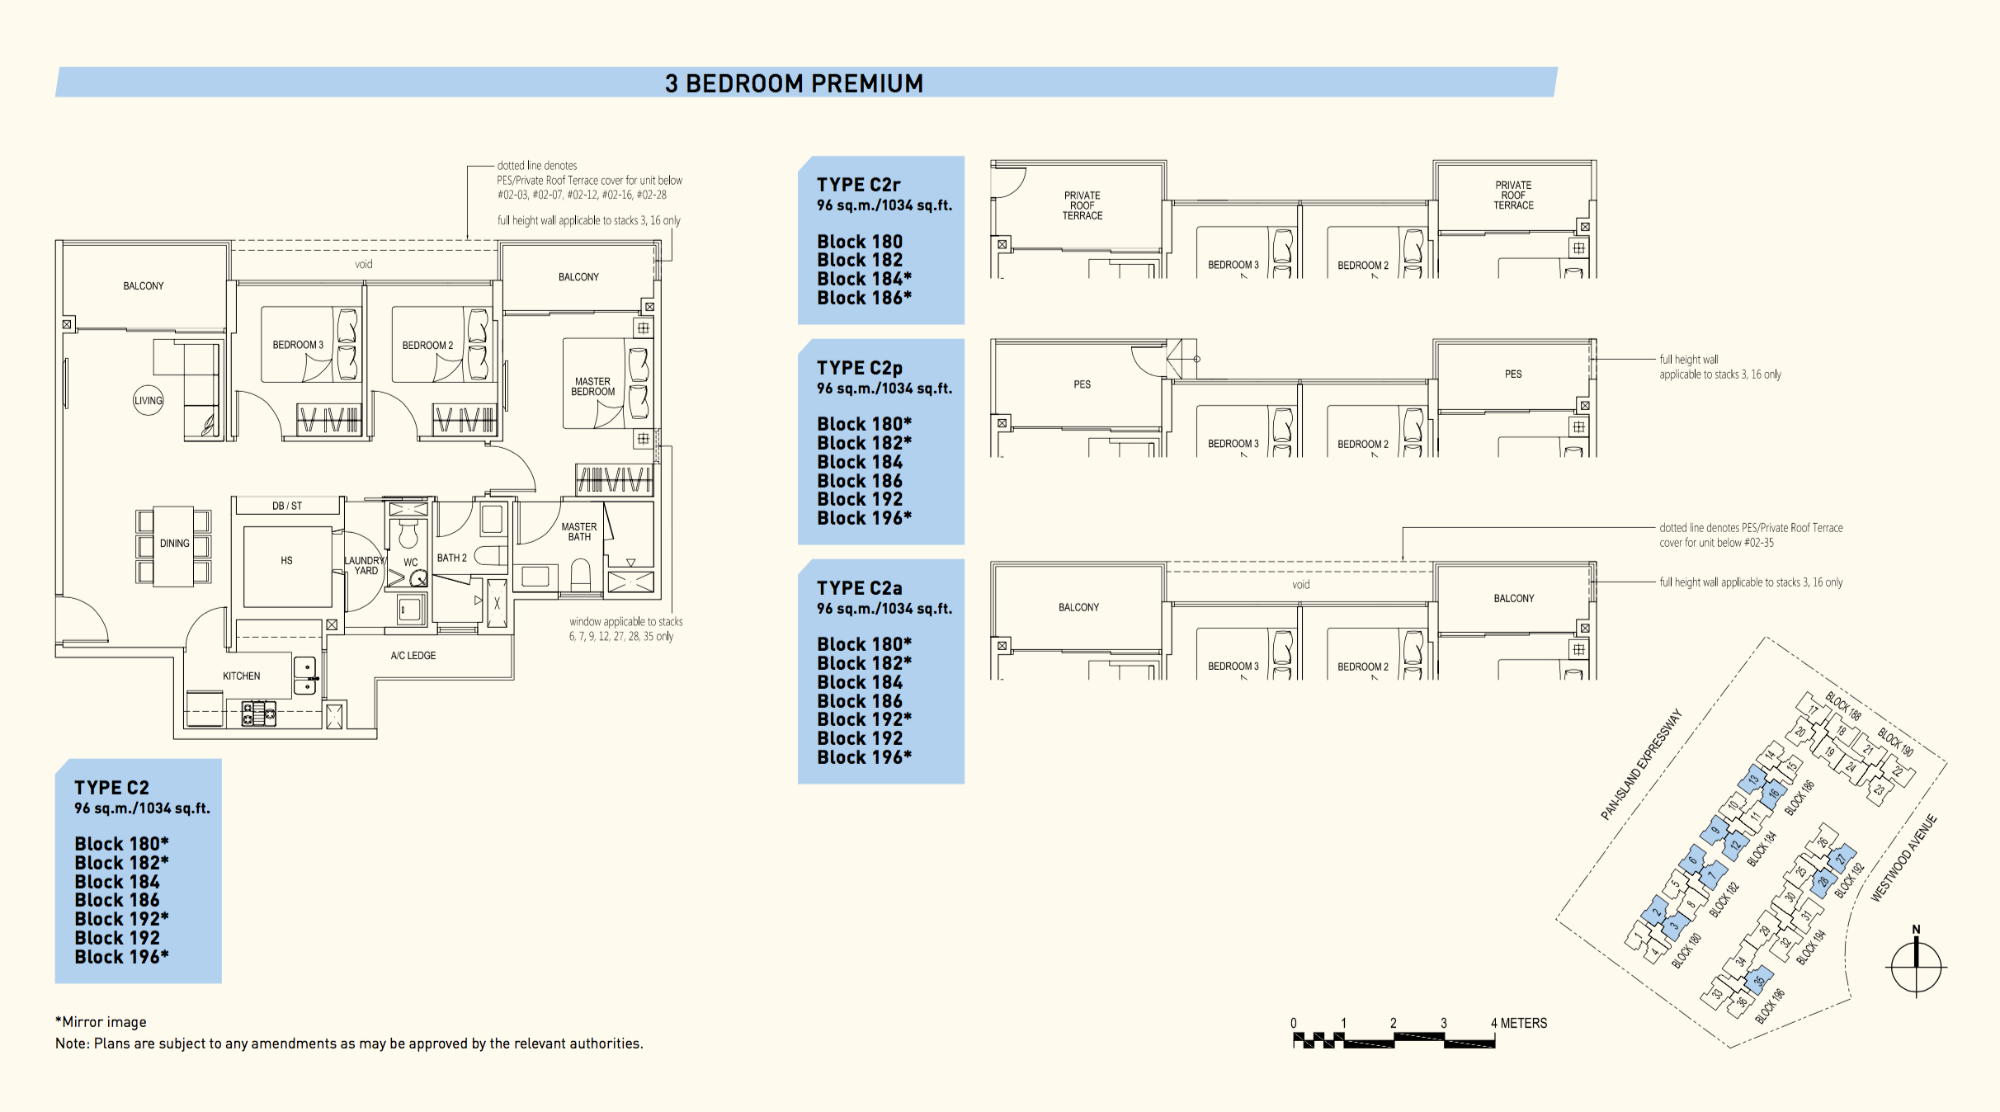 Westwood Residences EC Floor Plan 3 Bedroom Premium C2 96 sqm 1034 sqft